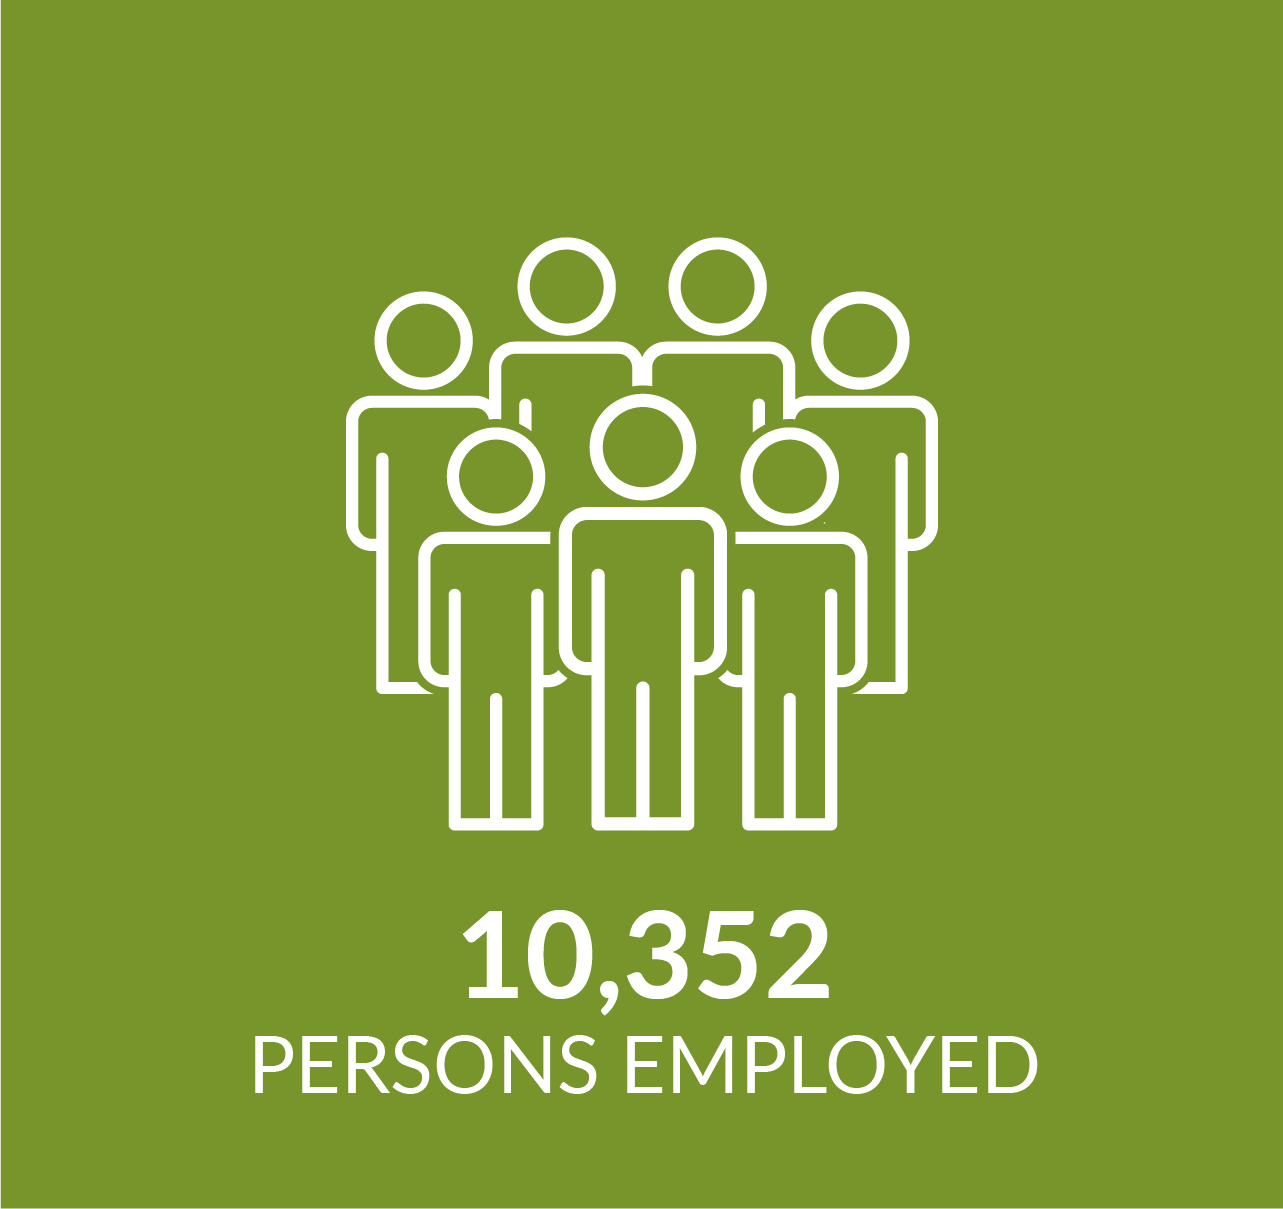 Infographic showing persons employed